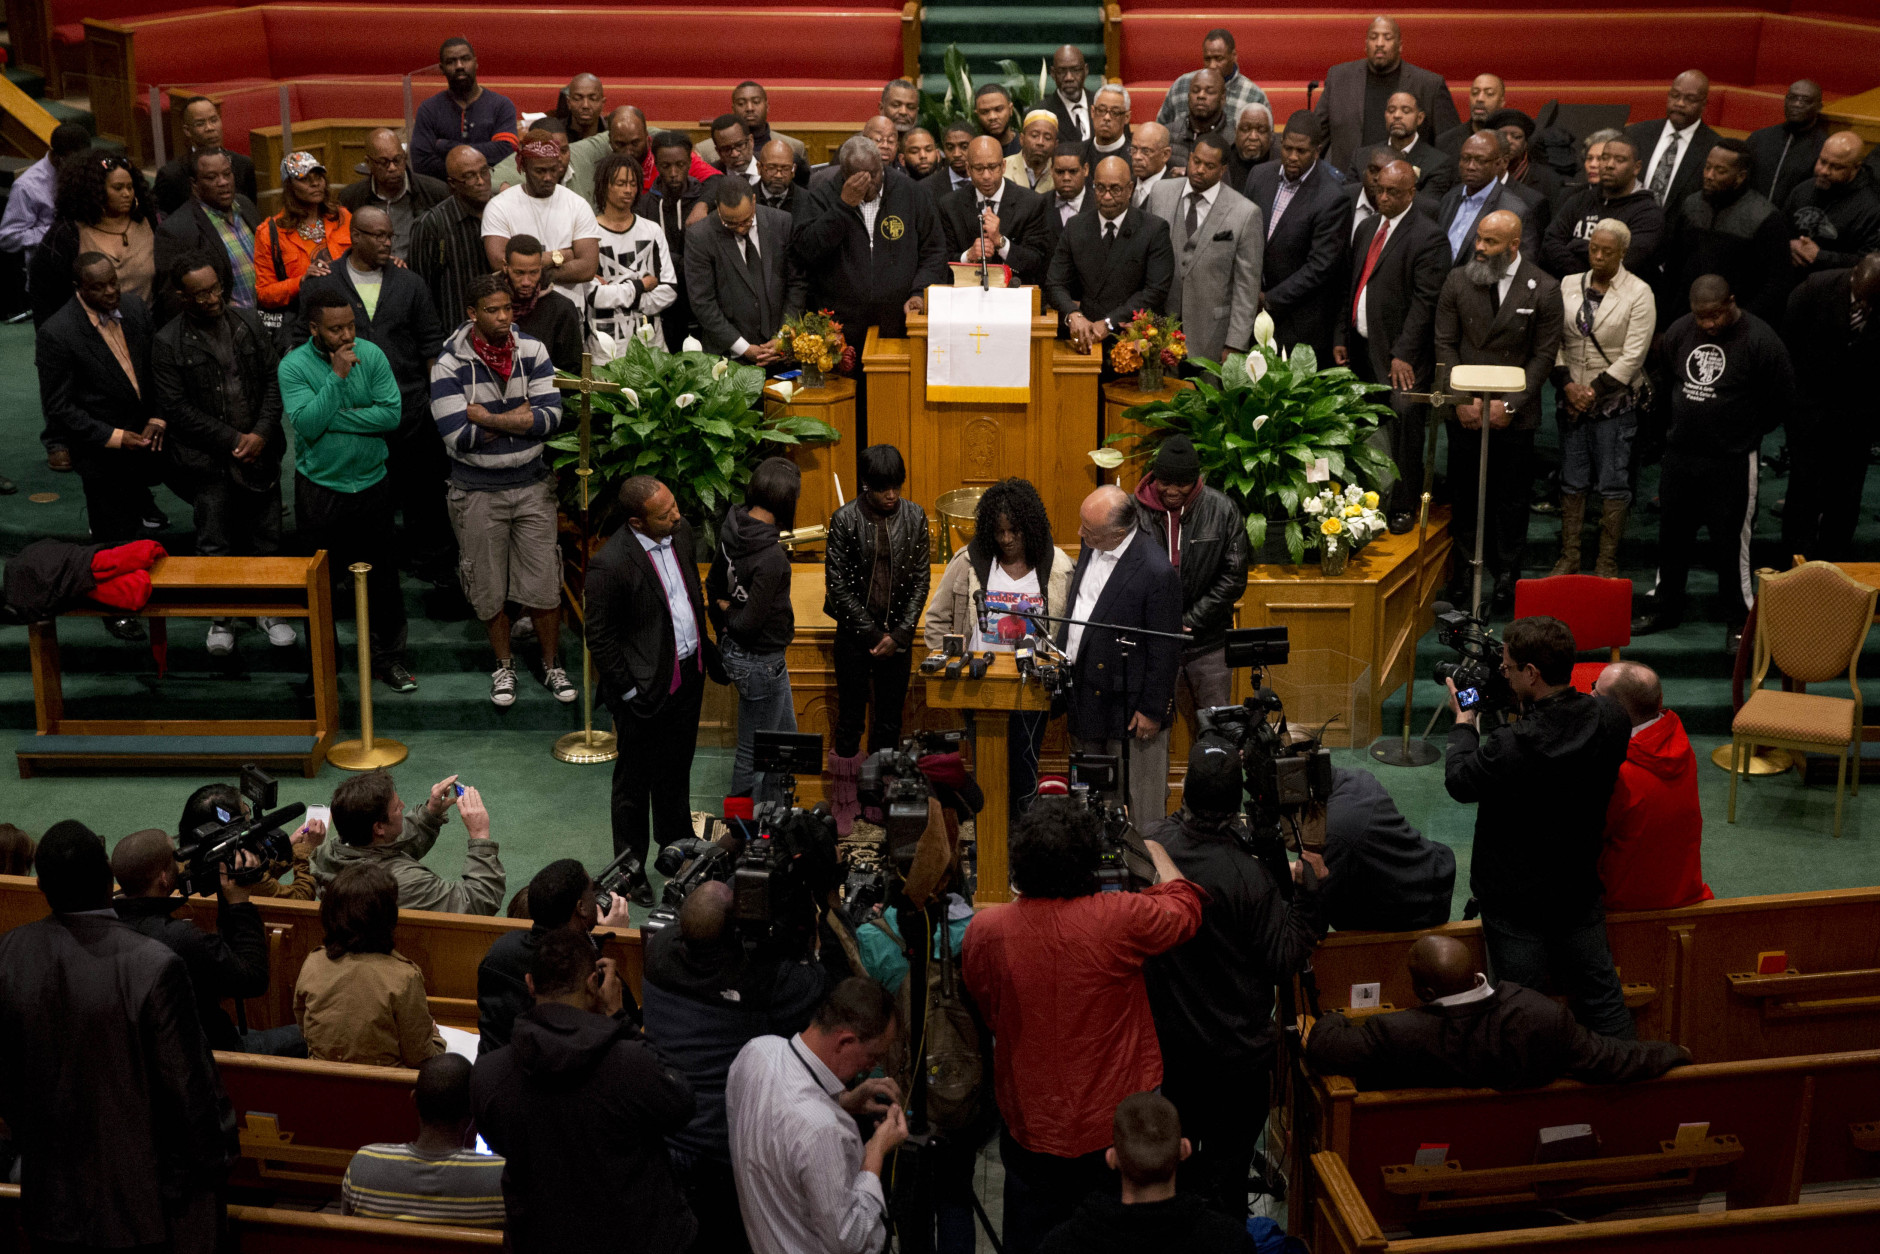 Gloria Darden, mother of Freddie Gray, speaks behind the podium with family members and clergy for a news conference, Monday, April 27, 2015, in Baltimore. Rioters plunged part of Baltimore into chaos torching a pharmacy, setting police cars ablaze and throwing bricks at officers. (AP Photo/Matt Rourke)